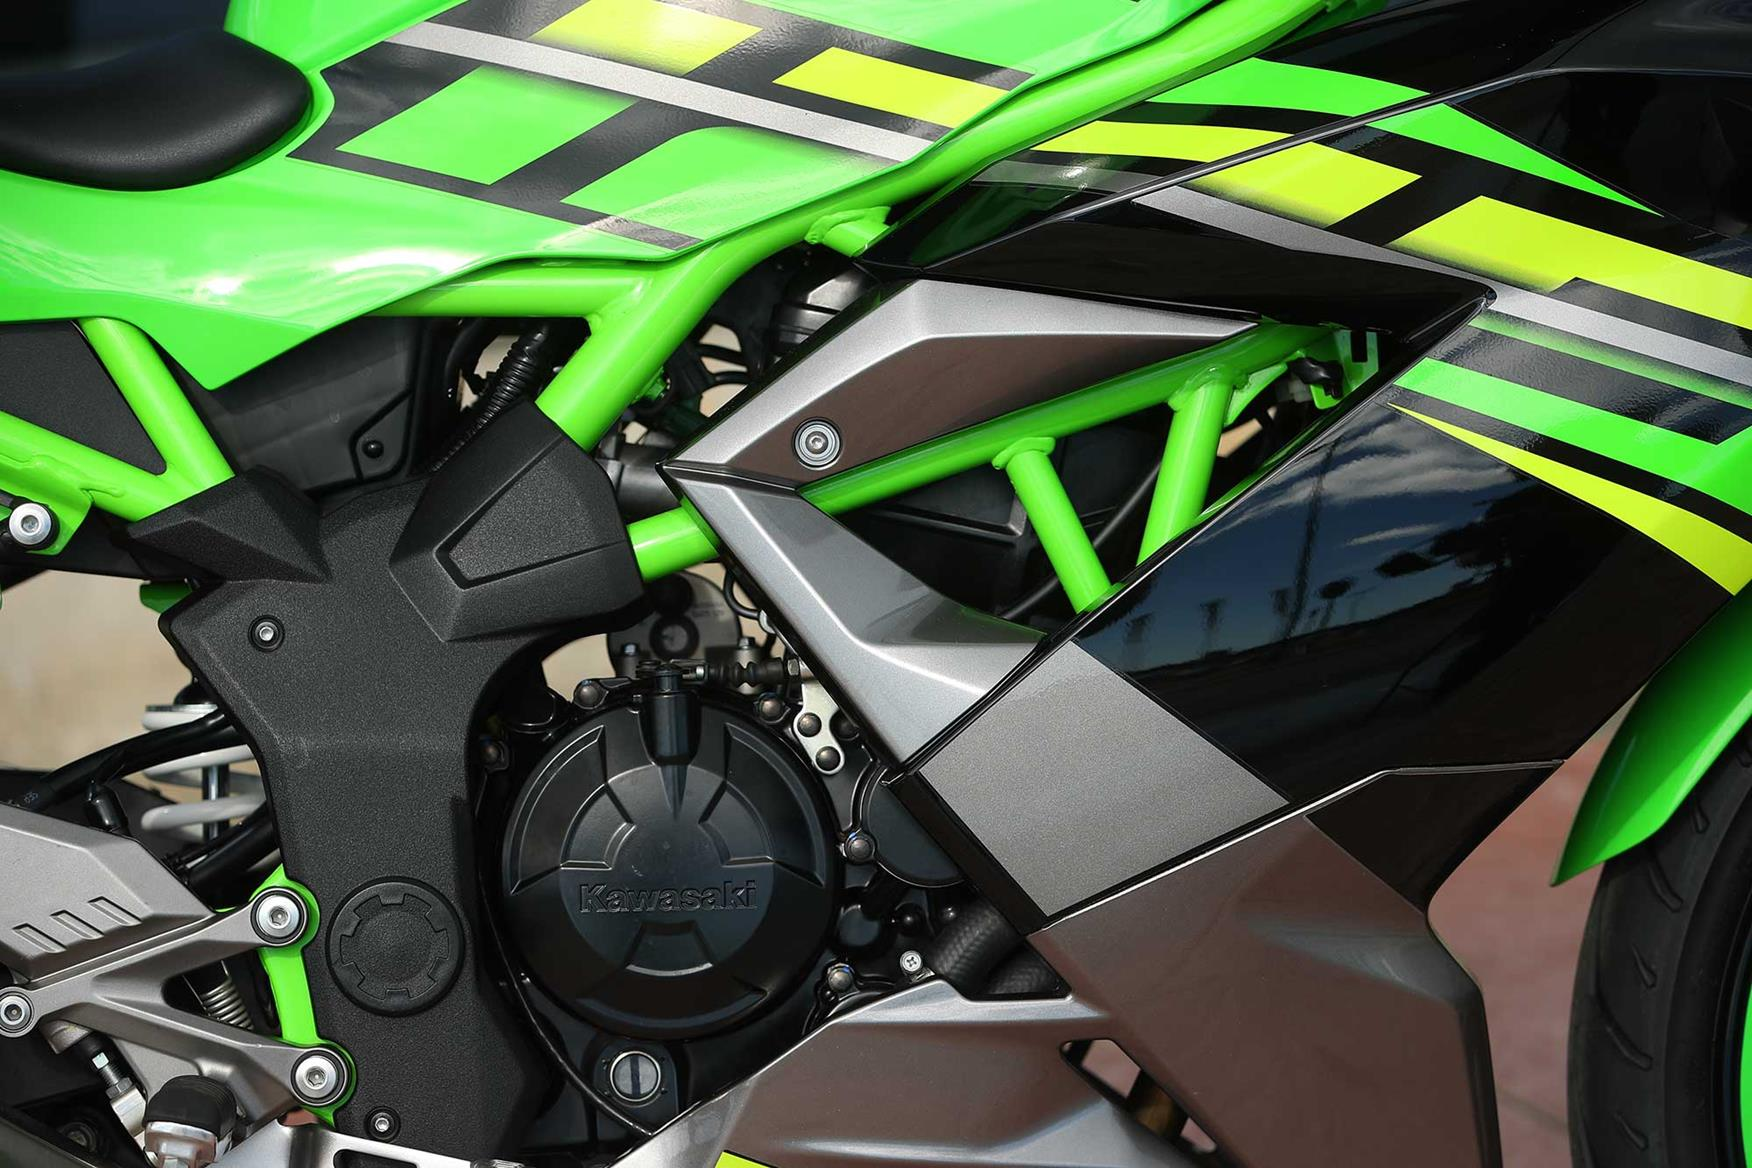 The Kawasaki Ninja 125 engine